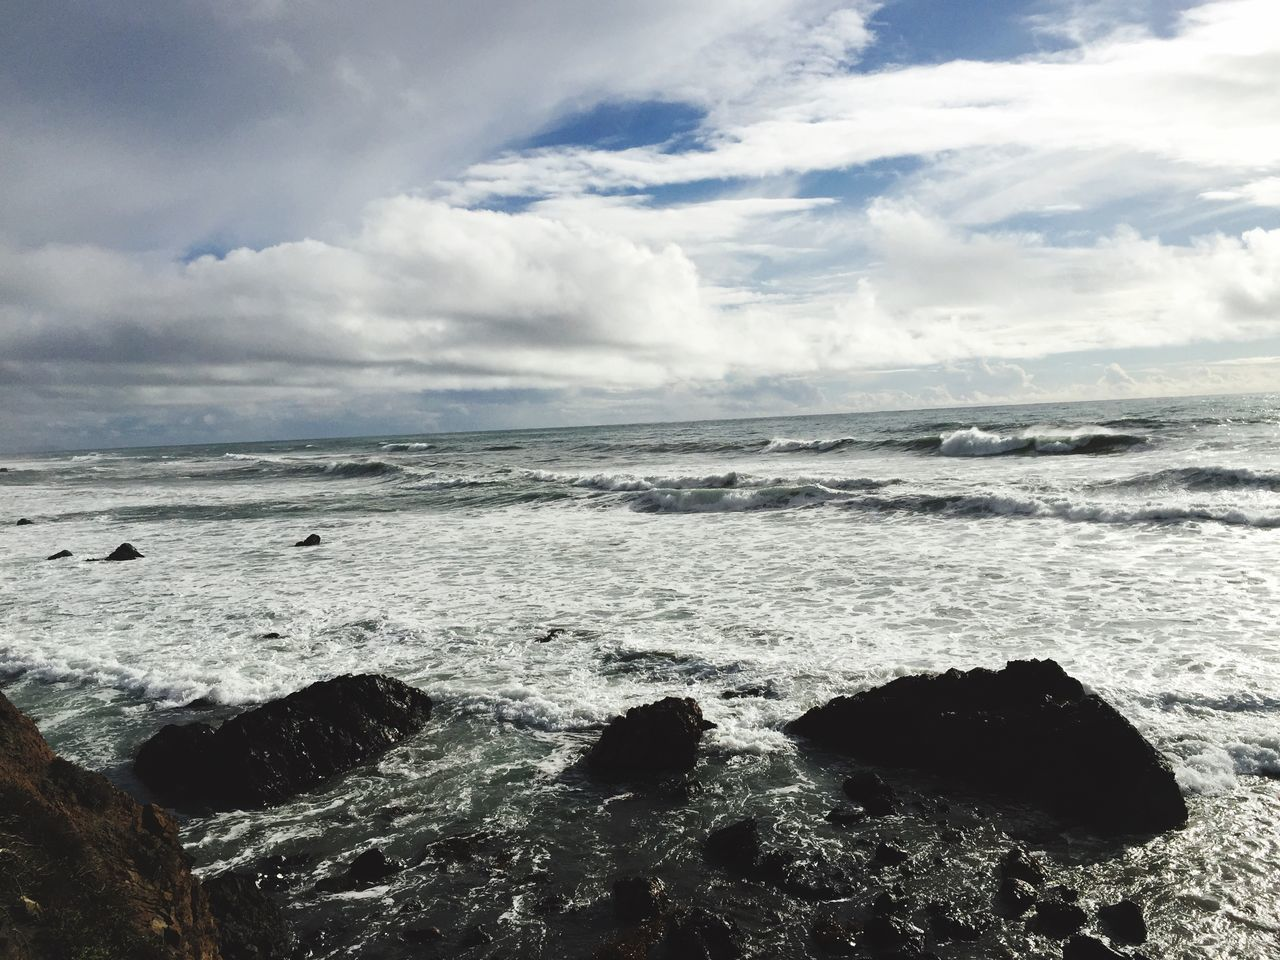 sea, water, beauty in nature, nature, wave, horizon over water, scenics, tranquility, sky, beach, no people, tranquil scene, cloud - sky, outdoors, day, tide, power in nature